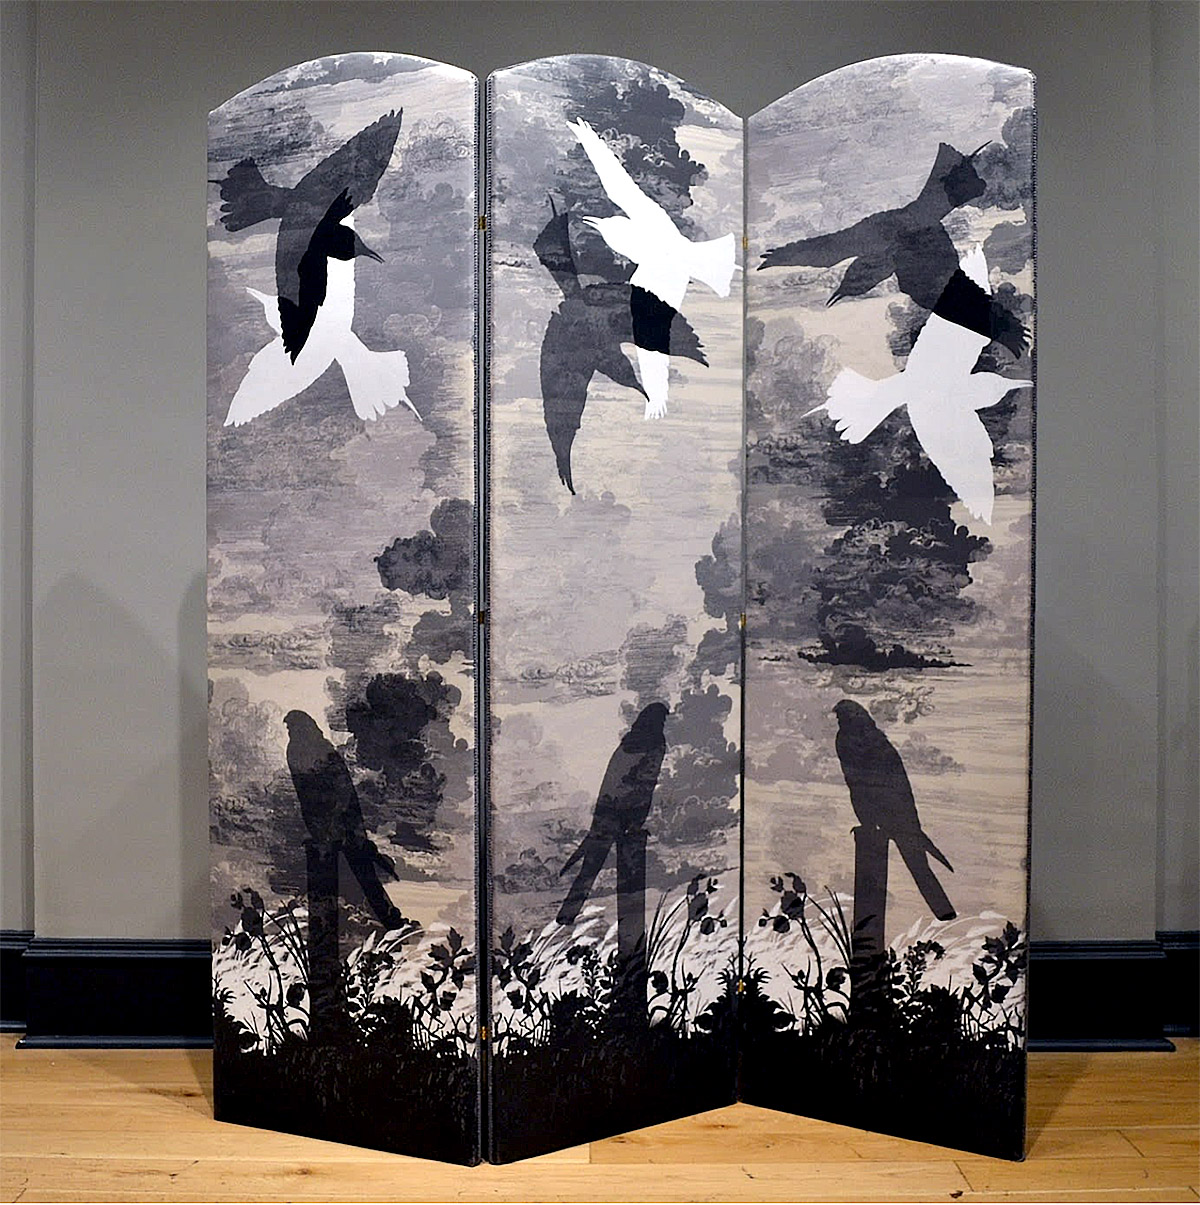 Timorous Beasties -Grey Kes, folding screen upholstered in cloud toile fabric with one-off screen print design, 2019